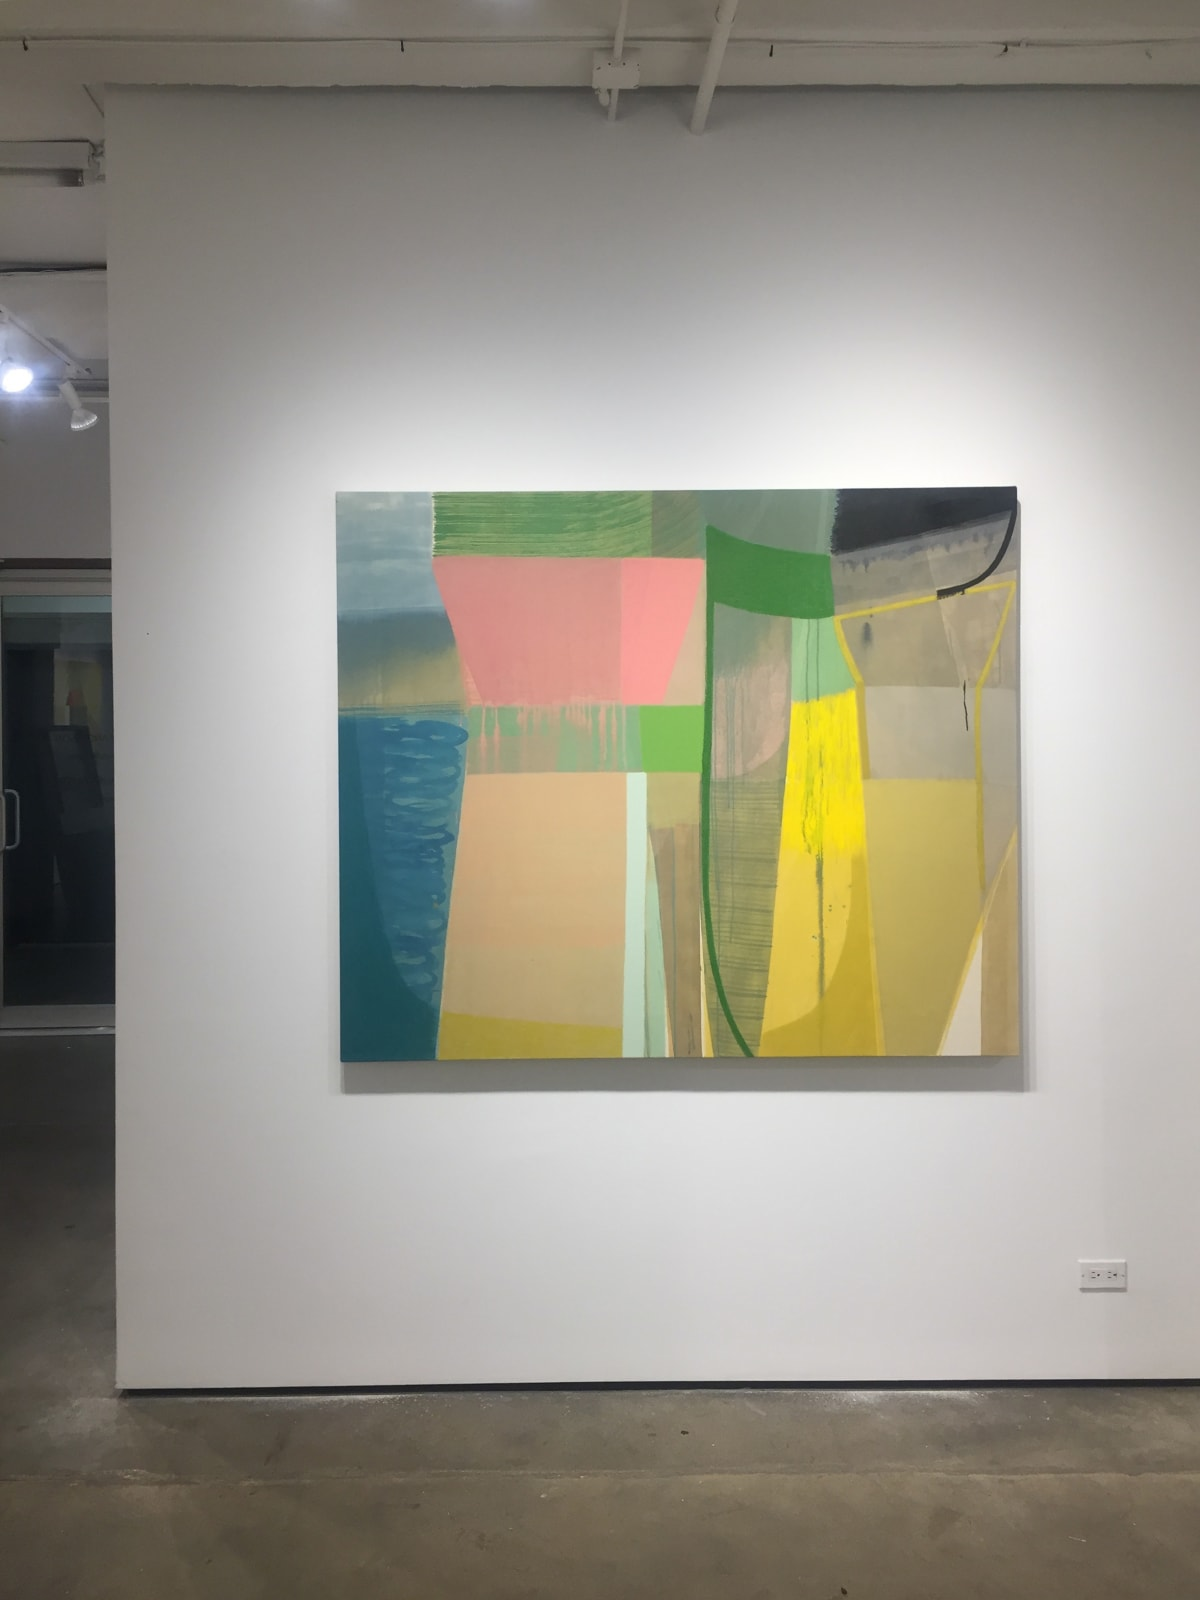 """Installation shot of Ky Anderson's """"Forest"""" painting. An abstract pigment, acrylic and oil painting on canvas in shades of green, blue, pink, yellow, tan, gray and black."""